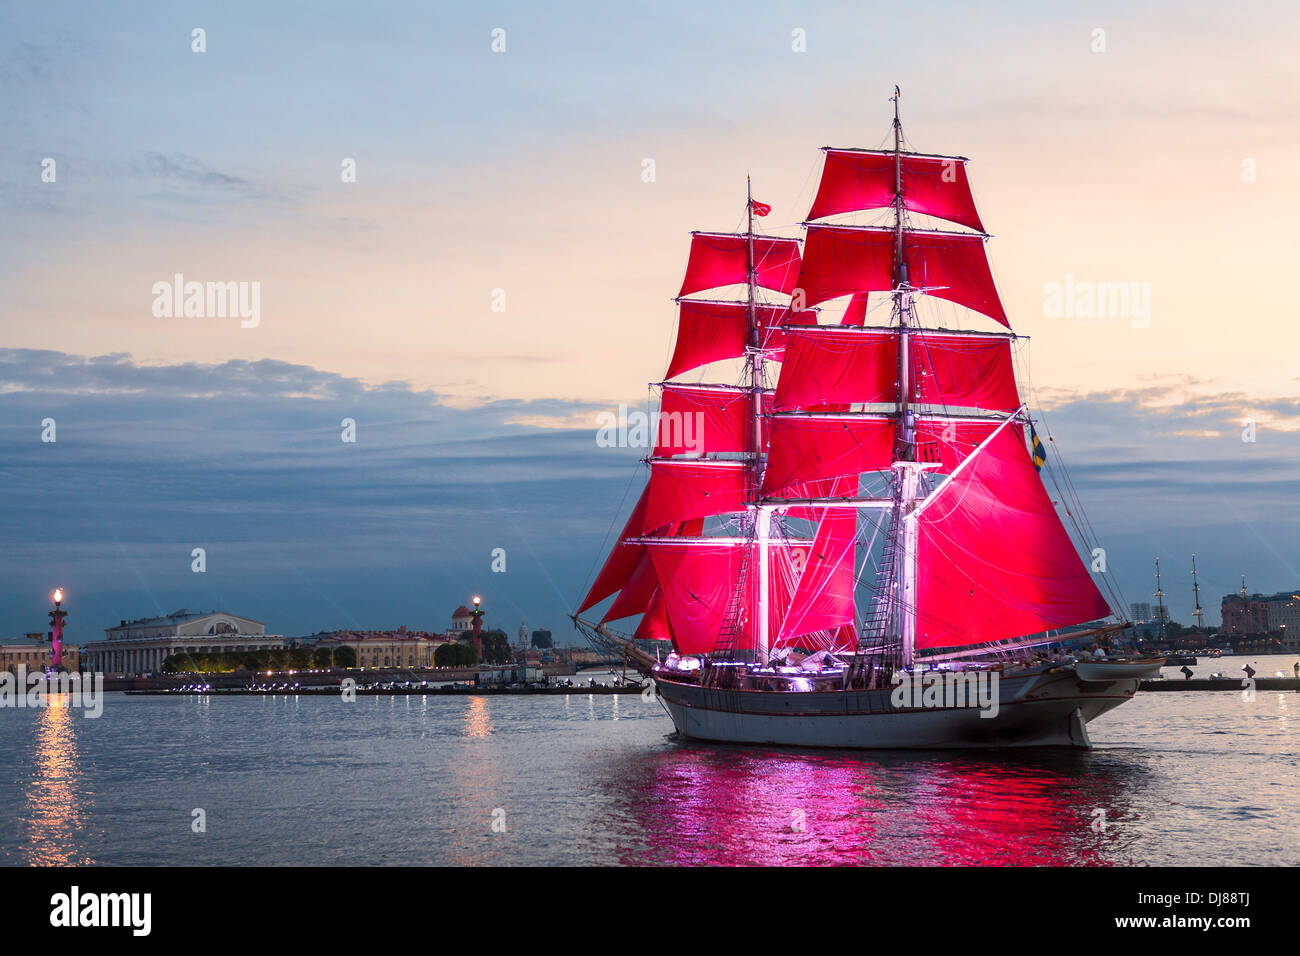 Celebration Scarlet Sails show during the White Nights Festival, St. Petersburg, Russia. Ship entering Neva river - Stock Image